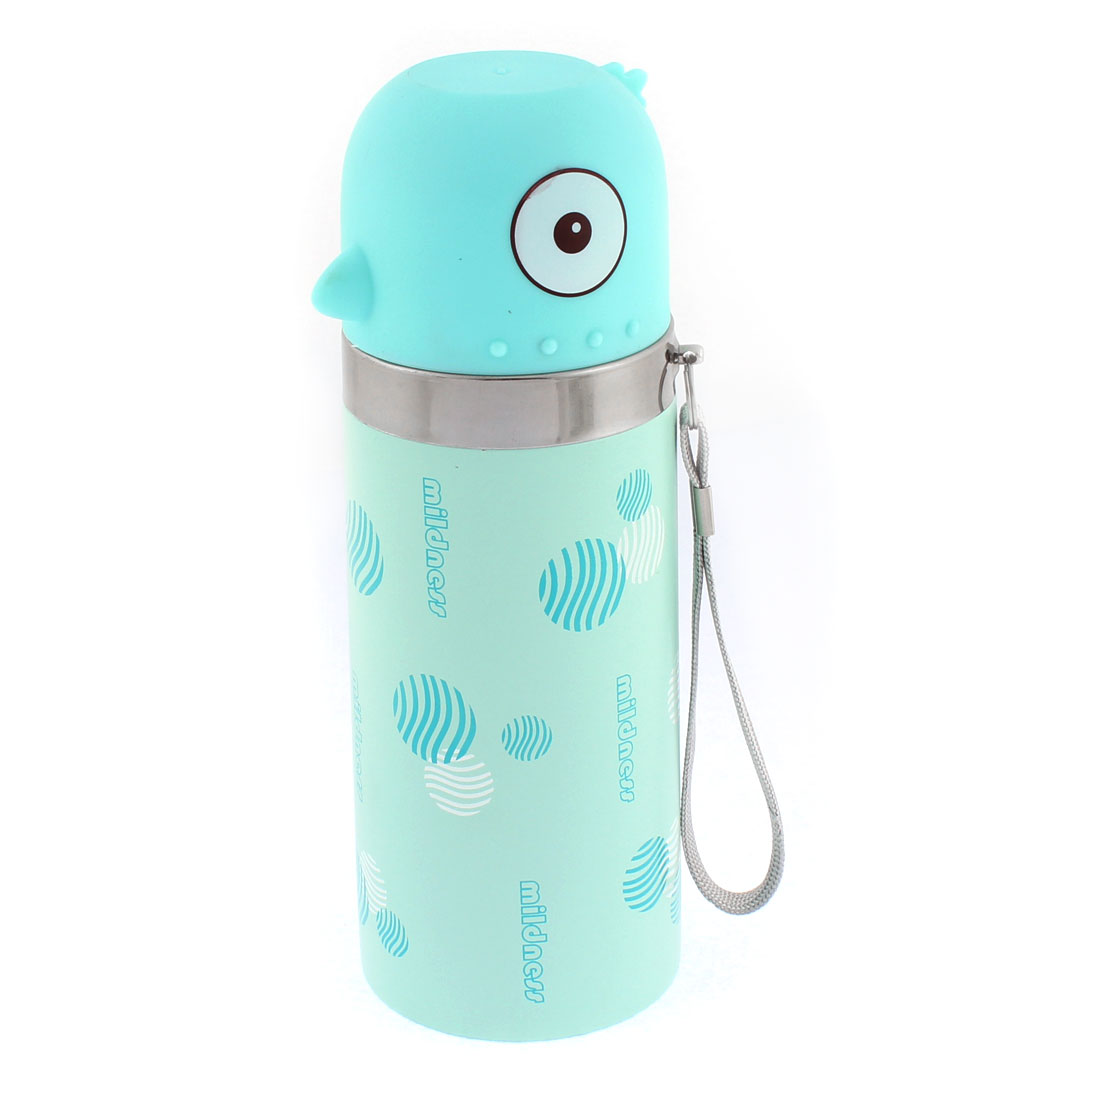 350ml Travel Mug Tea Water Bottle Flask Vacuum Thermos Cup Blue